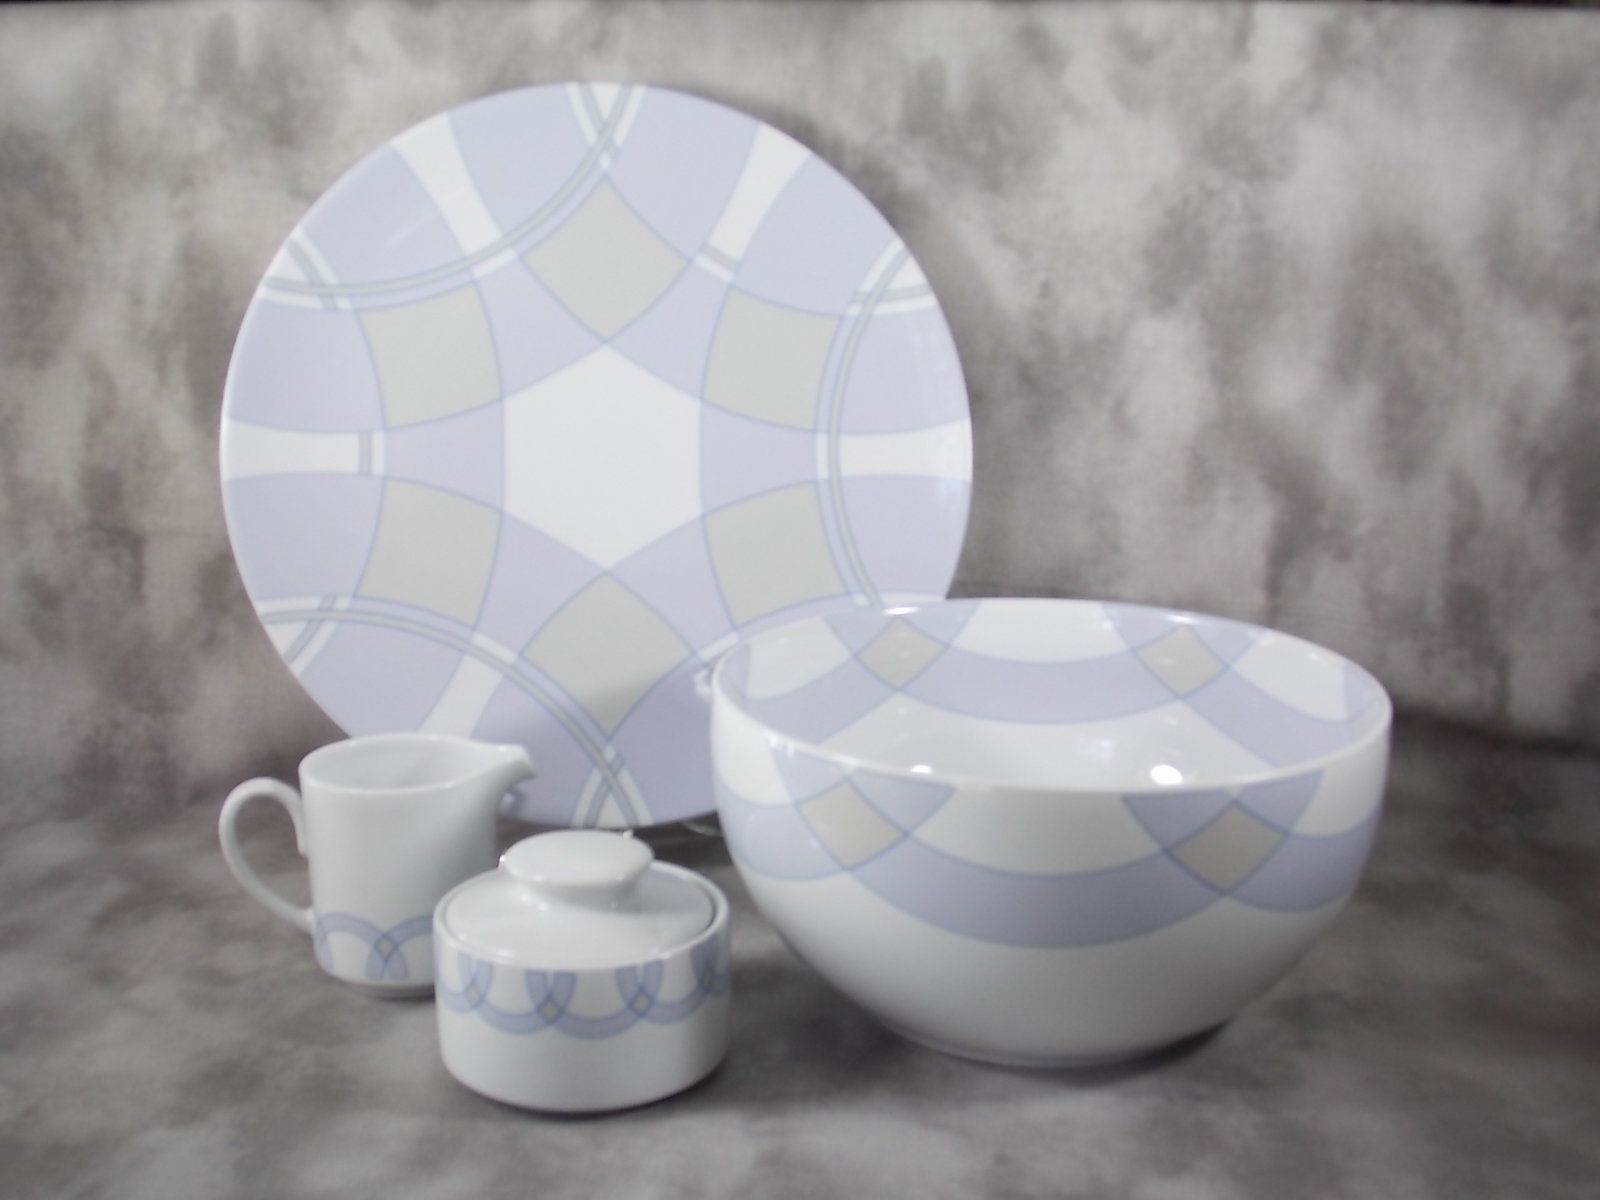 Mikasa Studio Nova Arch Hostess Set Pick A Piece Chop Plate